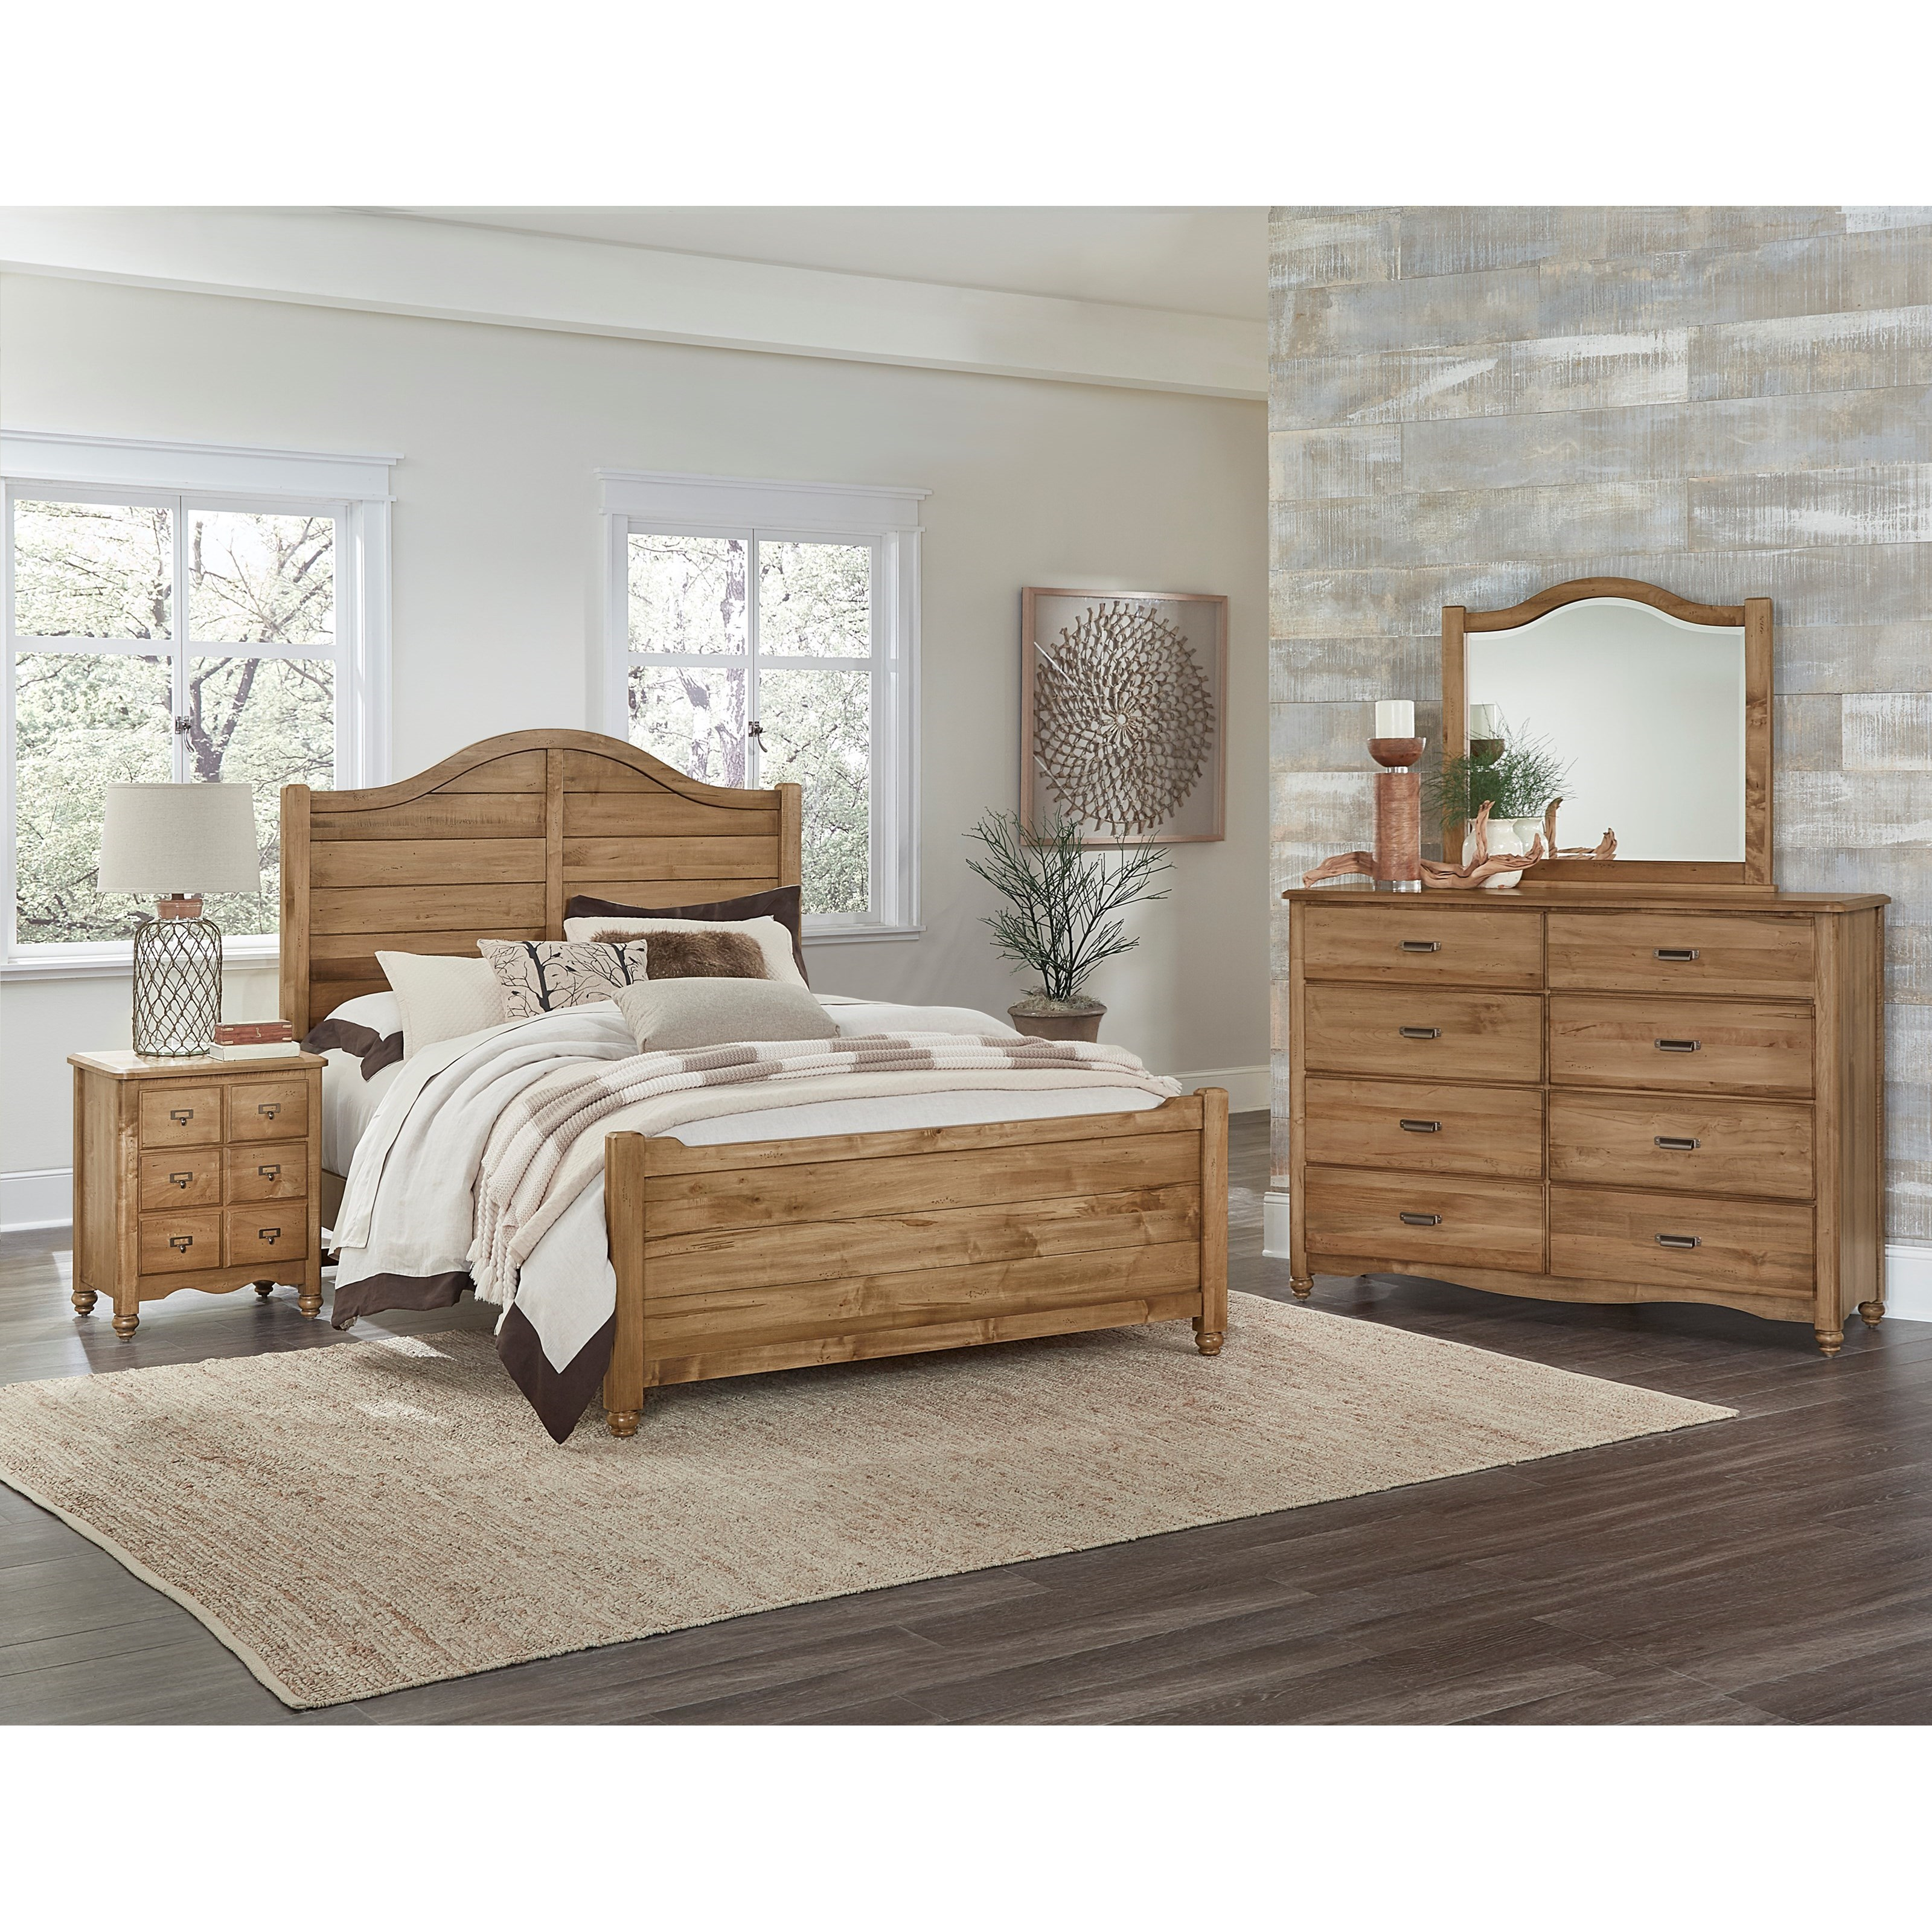 vaughan bassett american maple full bedroom group dunk bright furniture bedroom groups. Black Bedroom Furniture Sets. Home Design Ideas